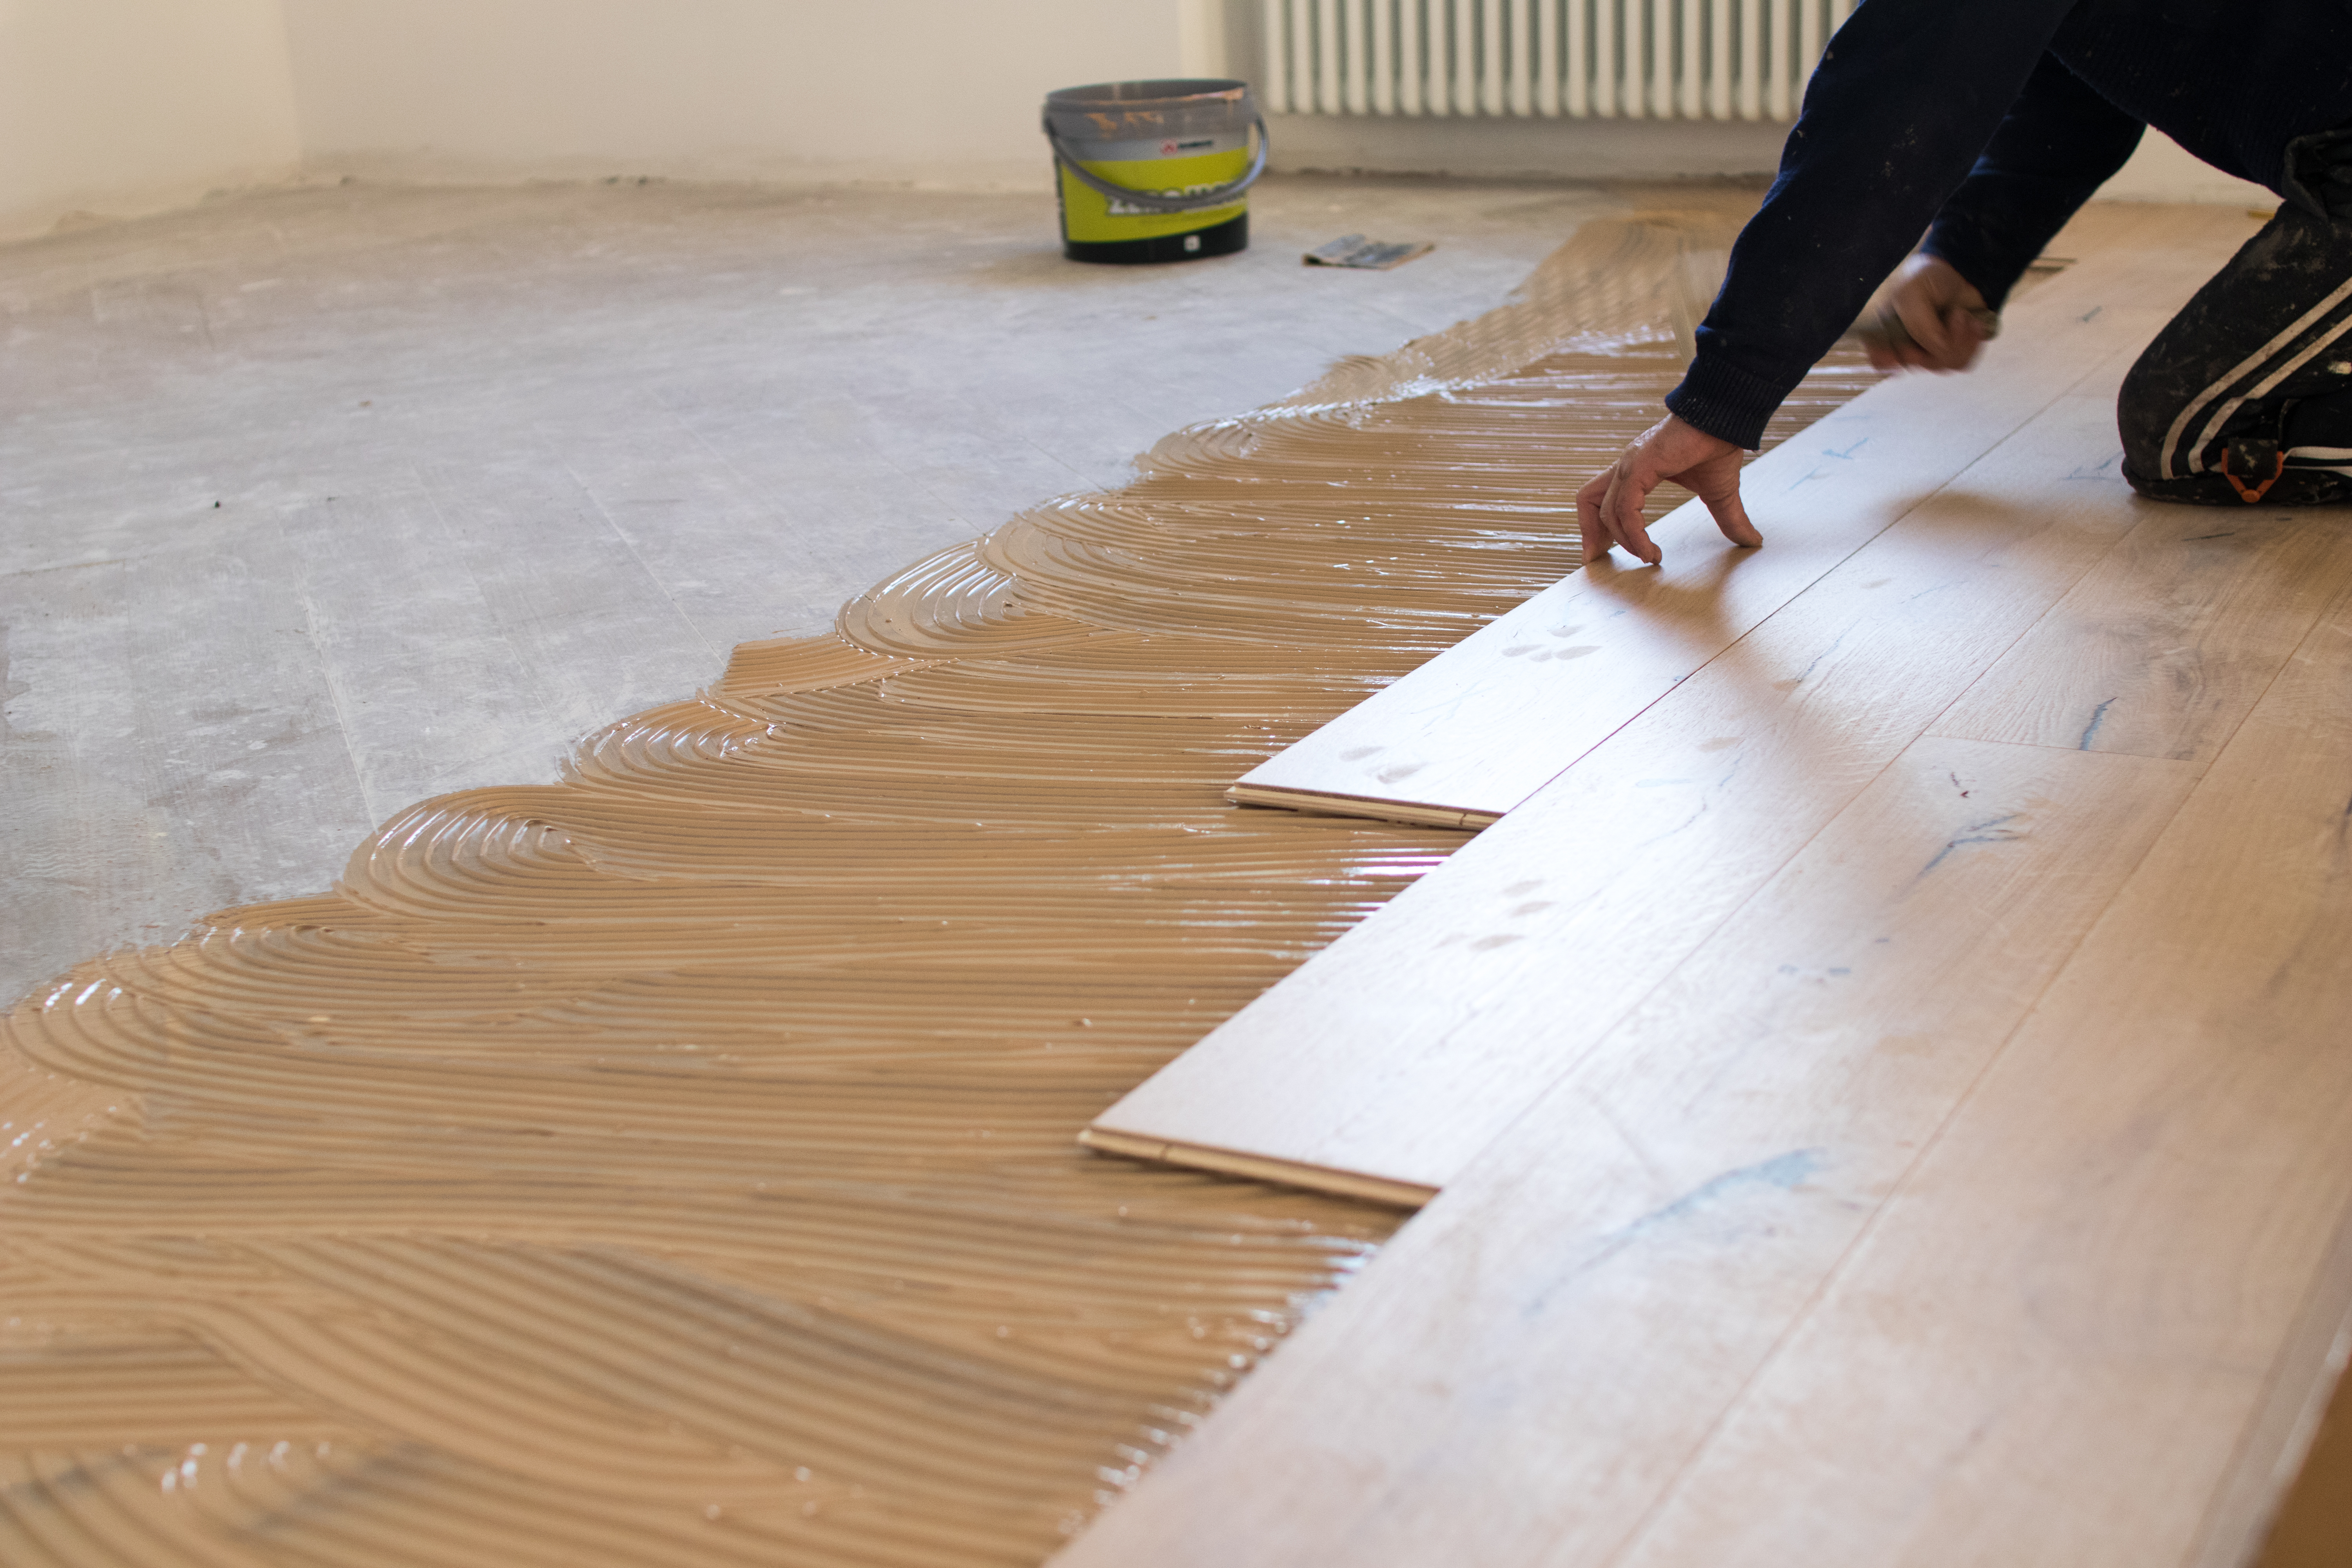 How To Level A Subfloor For A Hardwood Floor Install Home Guides